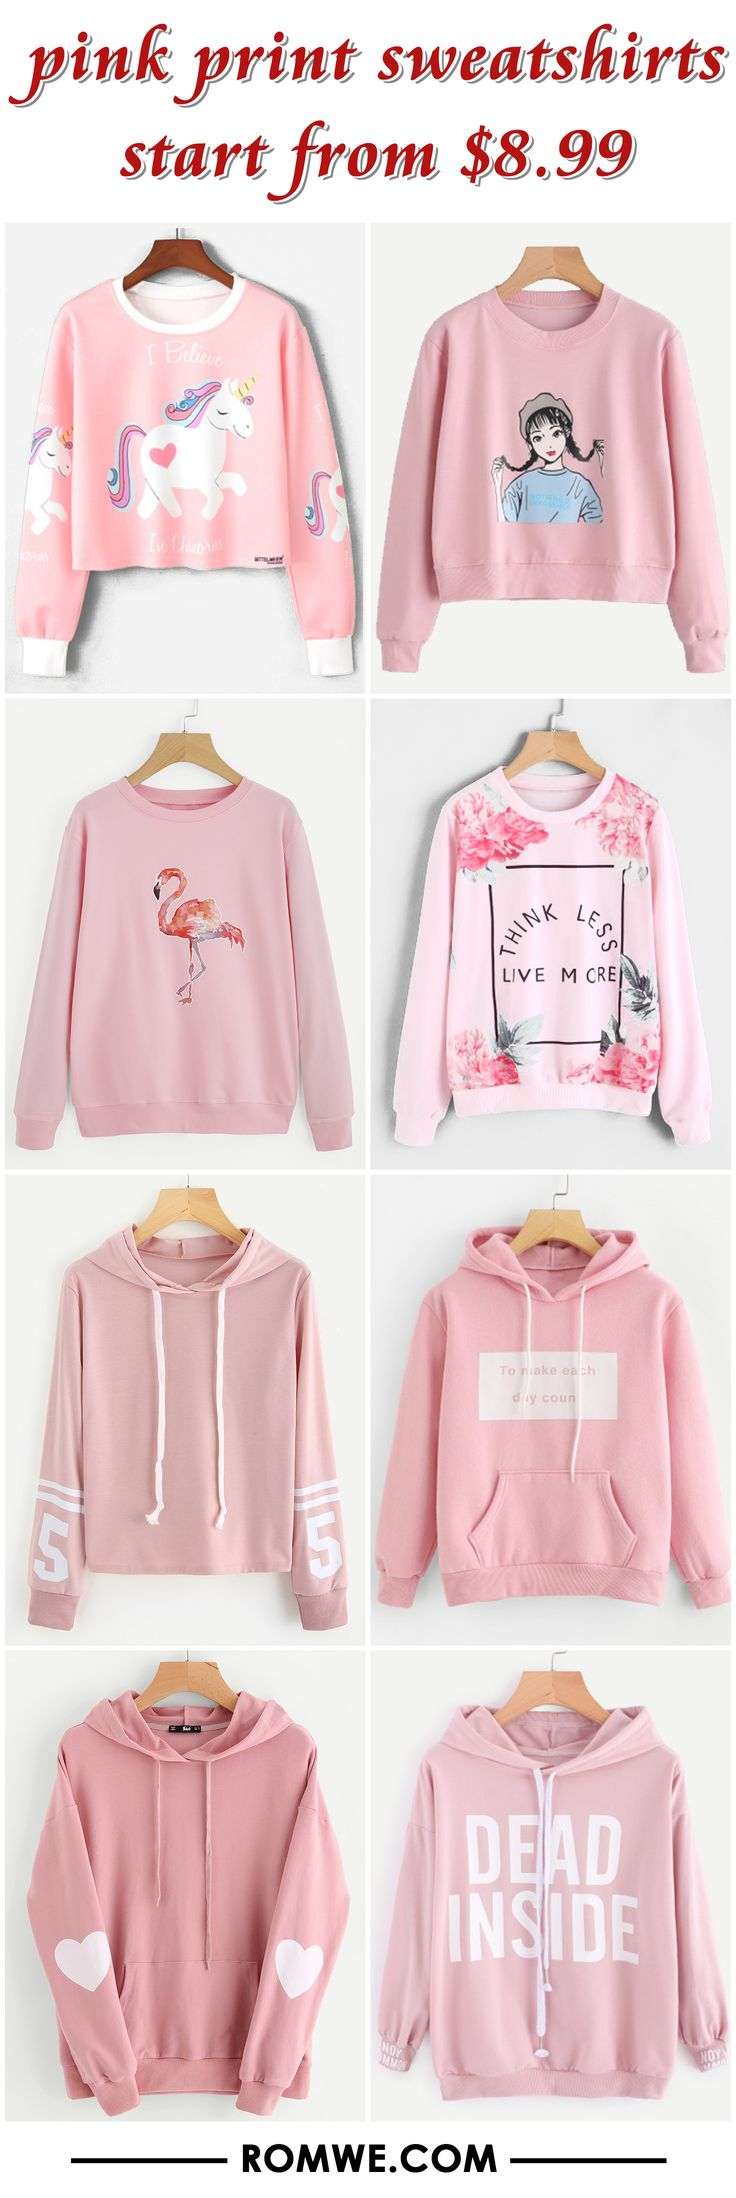 pink print sweatshirts from $8.99